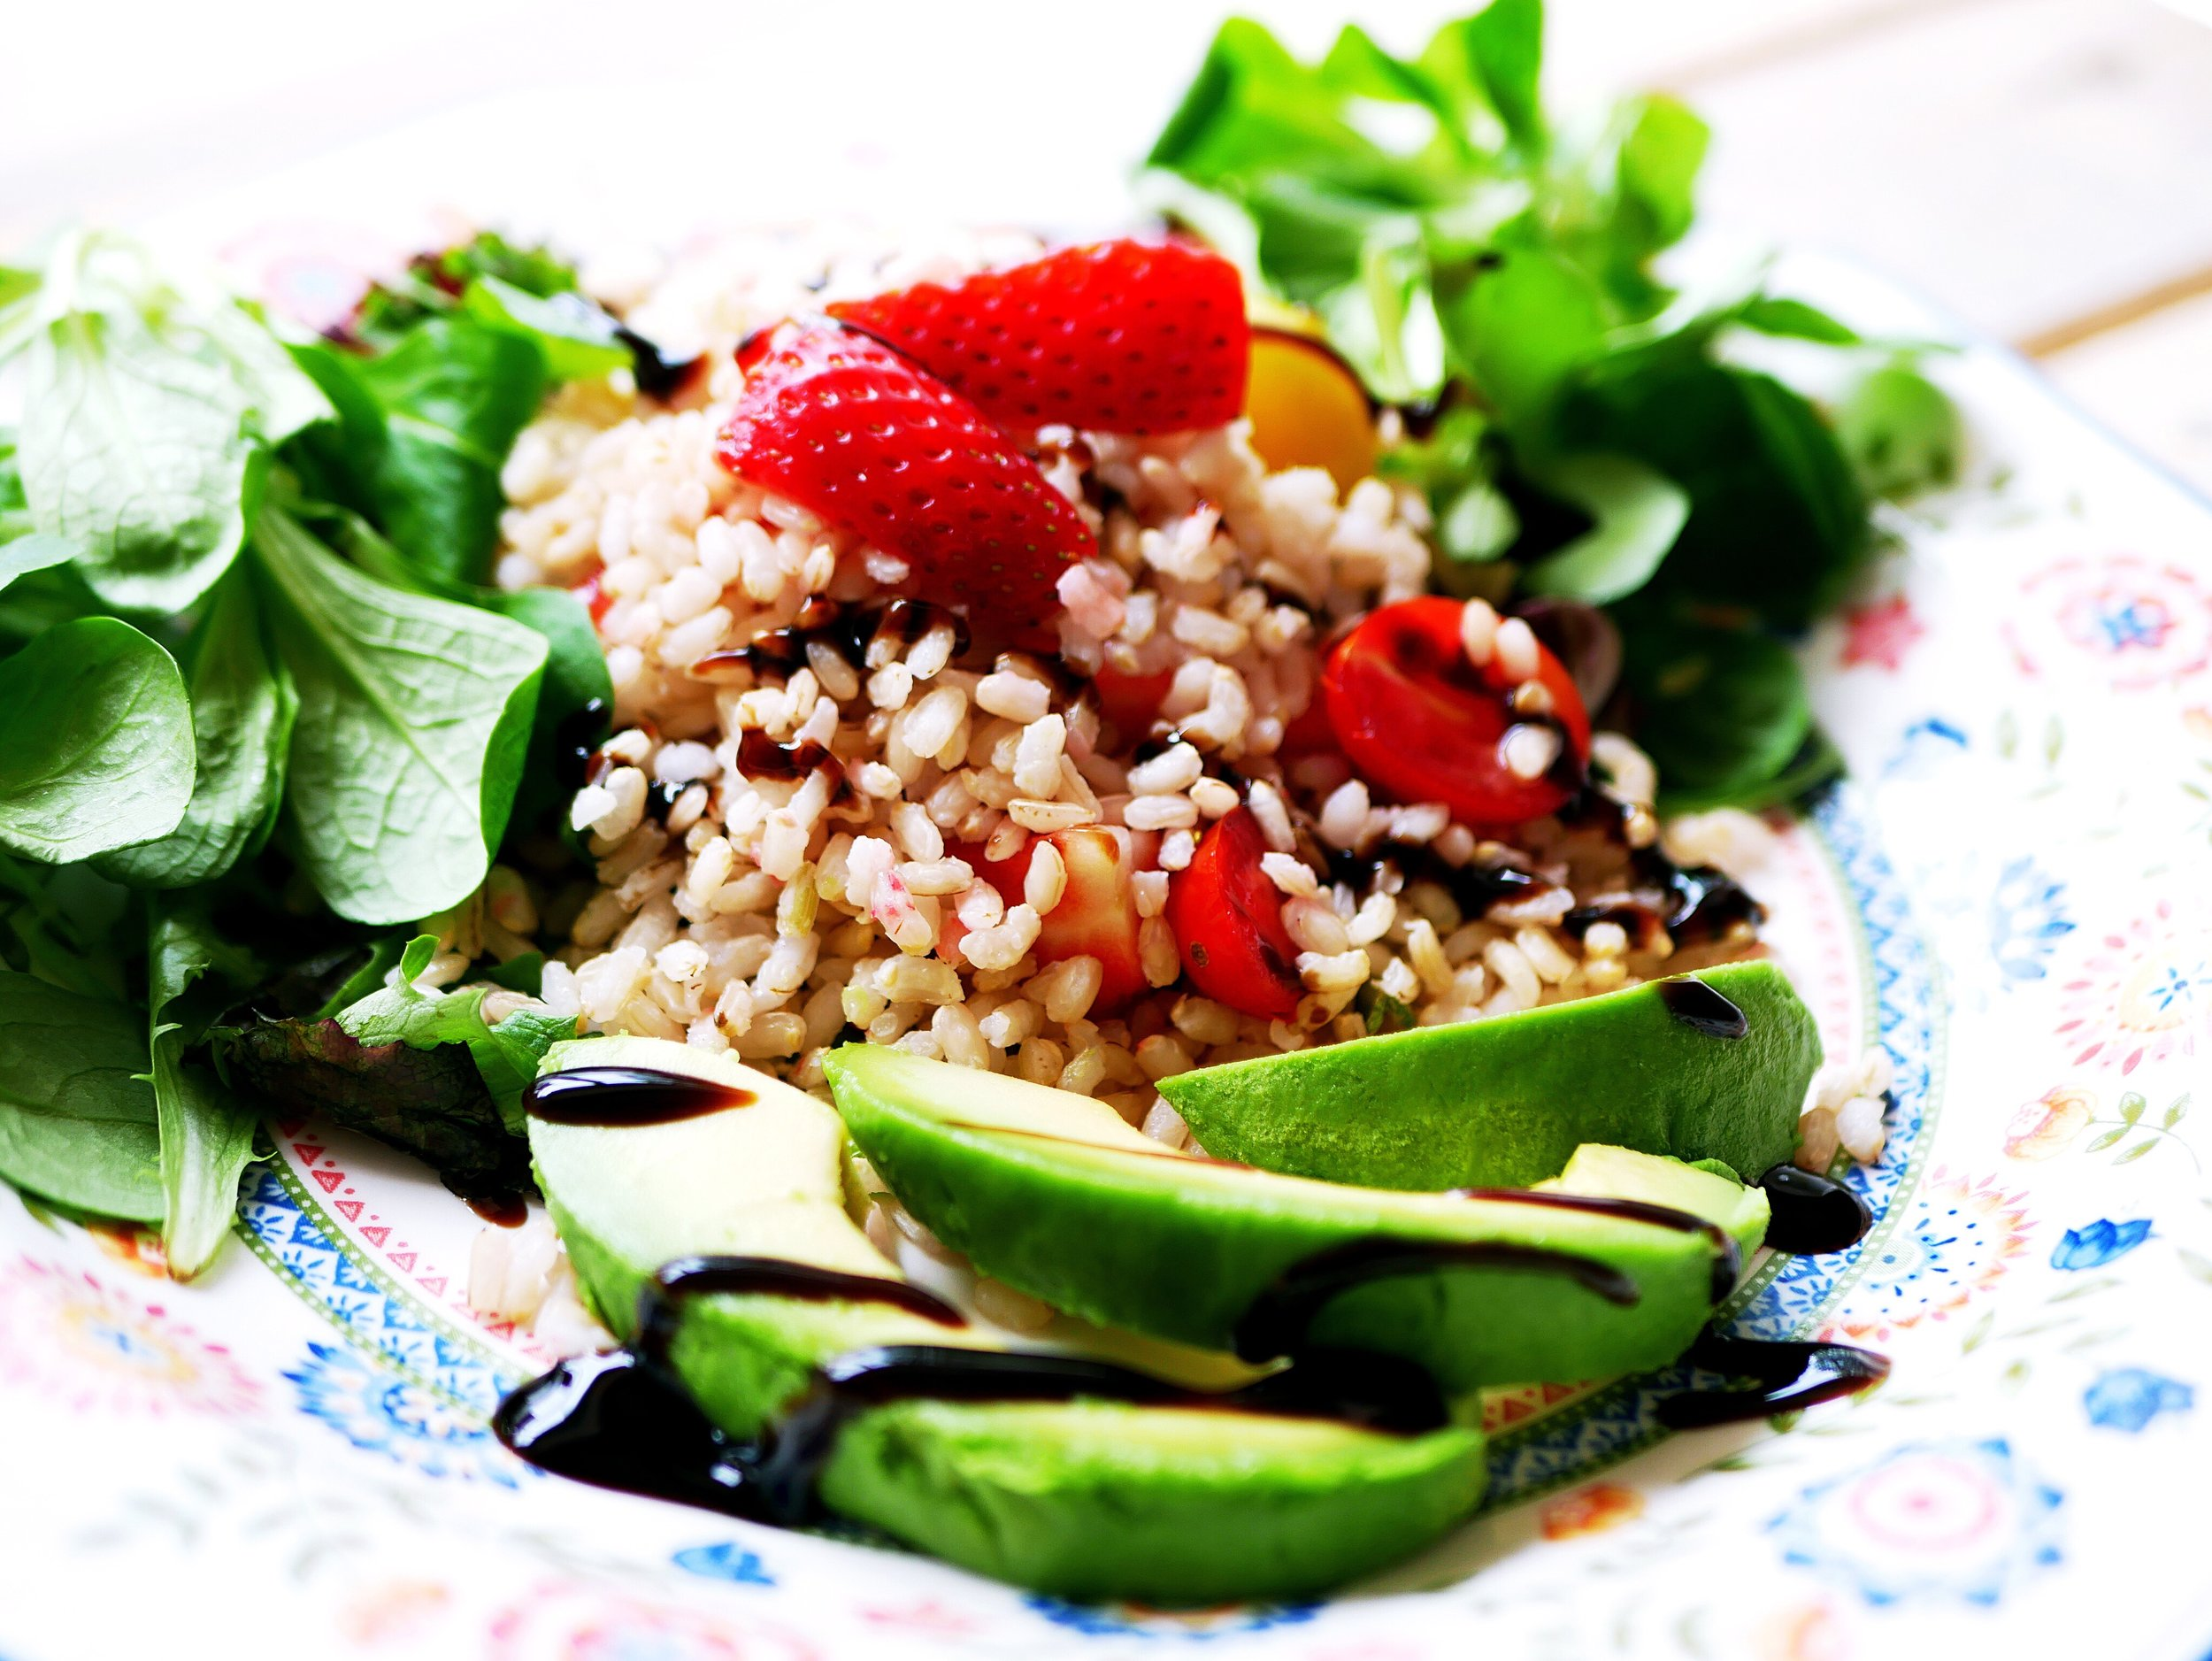 avocado with balsamic dressing and rice salad